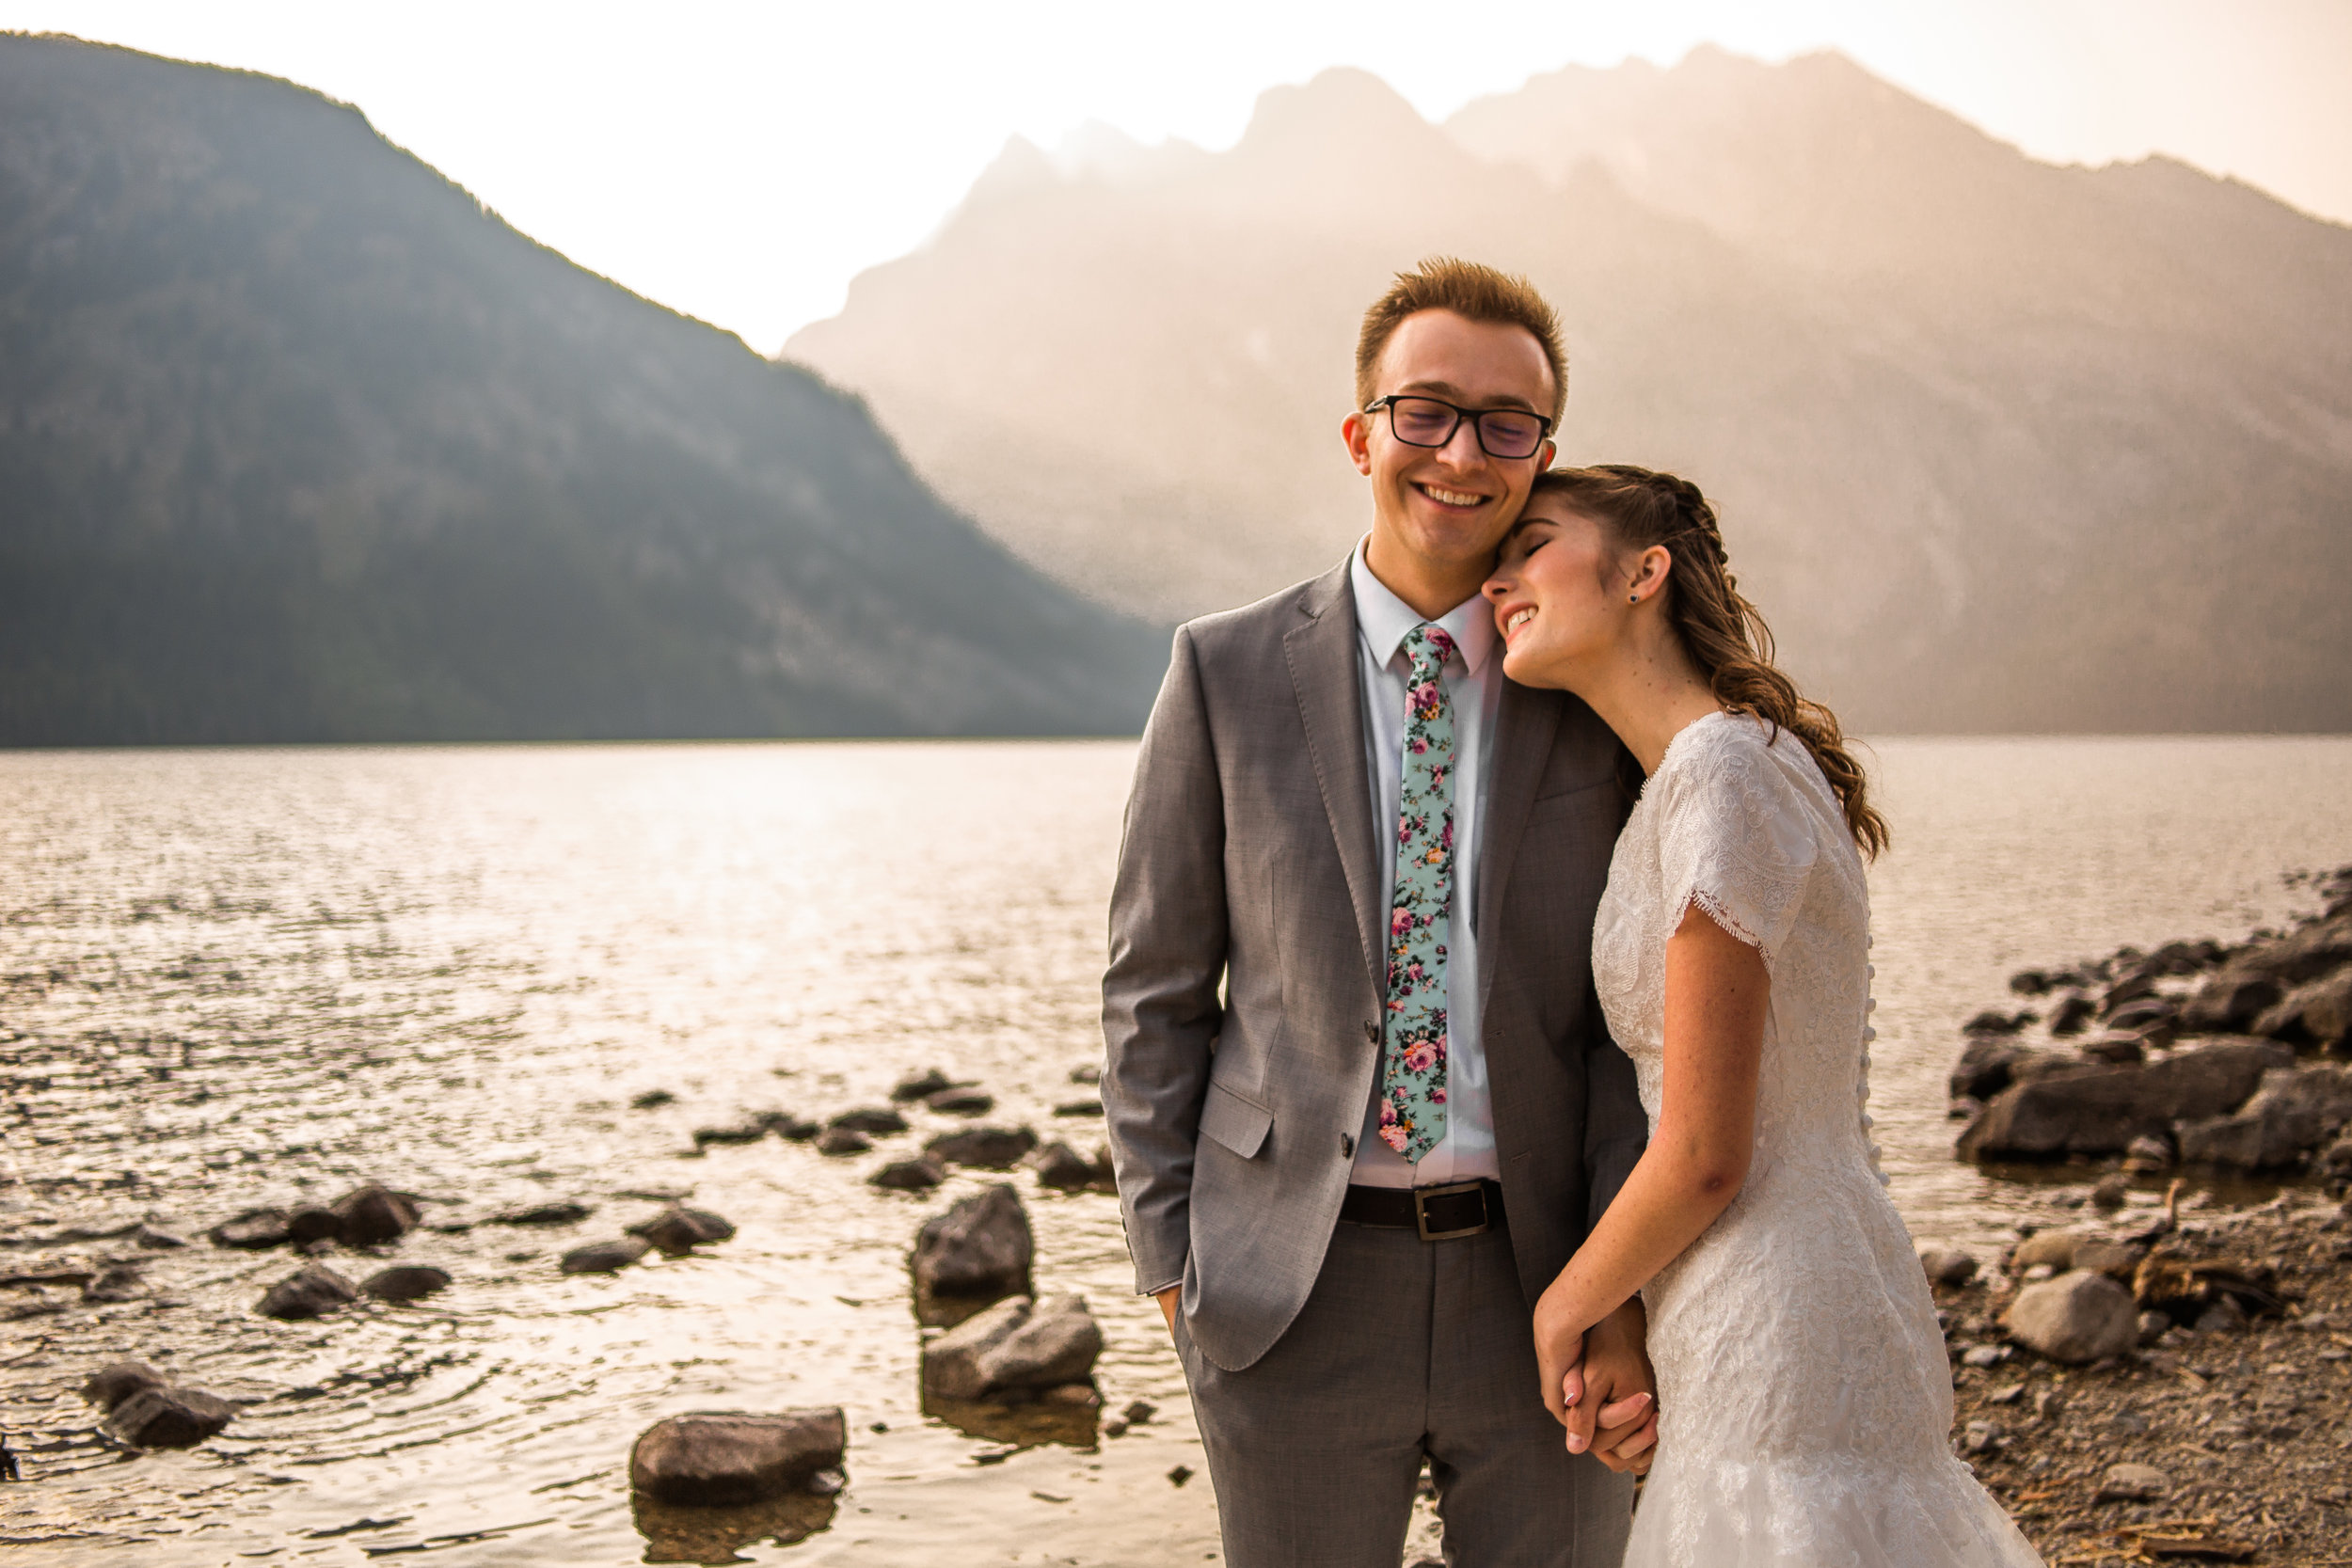 Grand-Teton-National-Park-Bridal-Session30.jpg